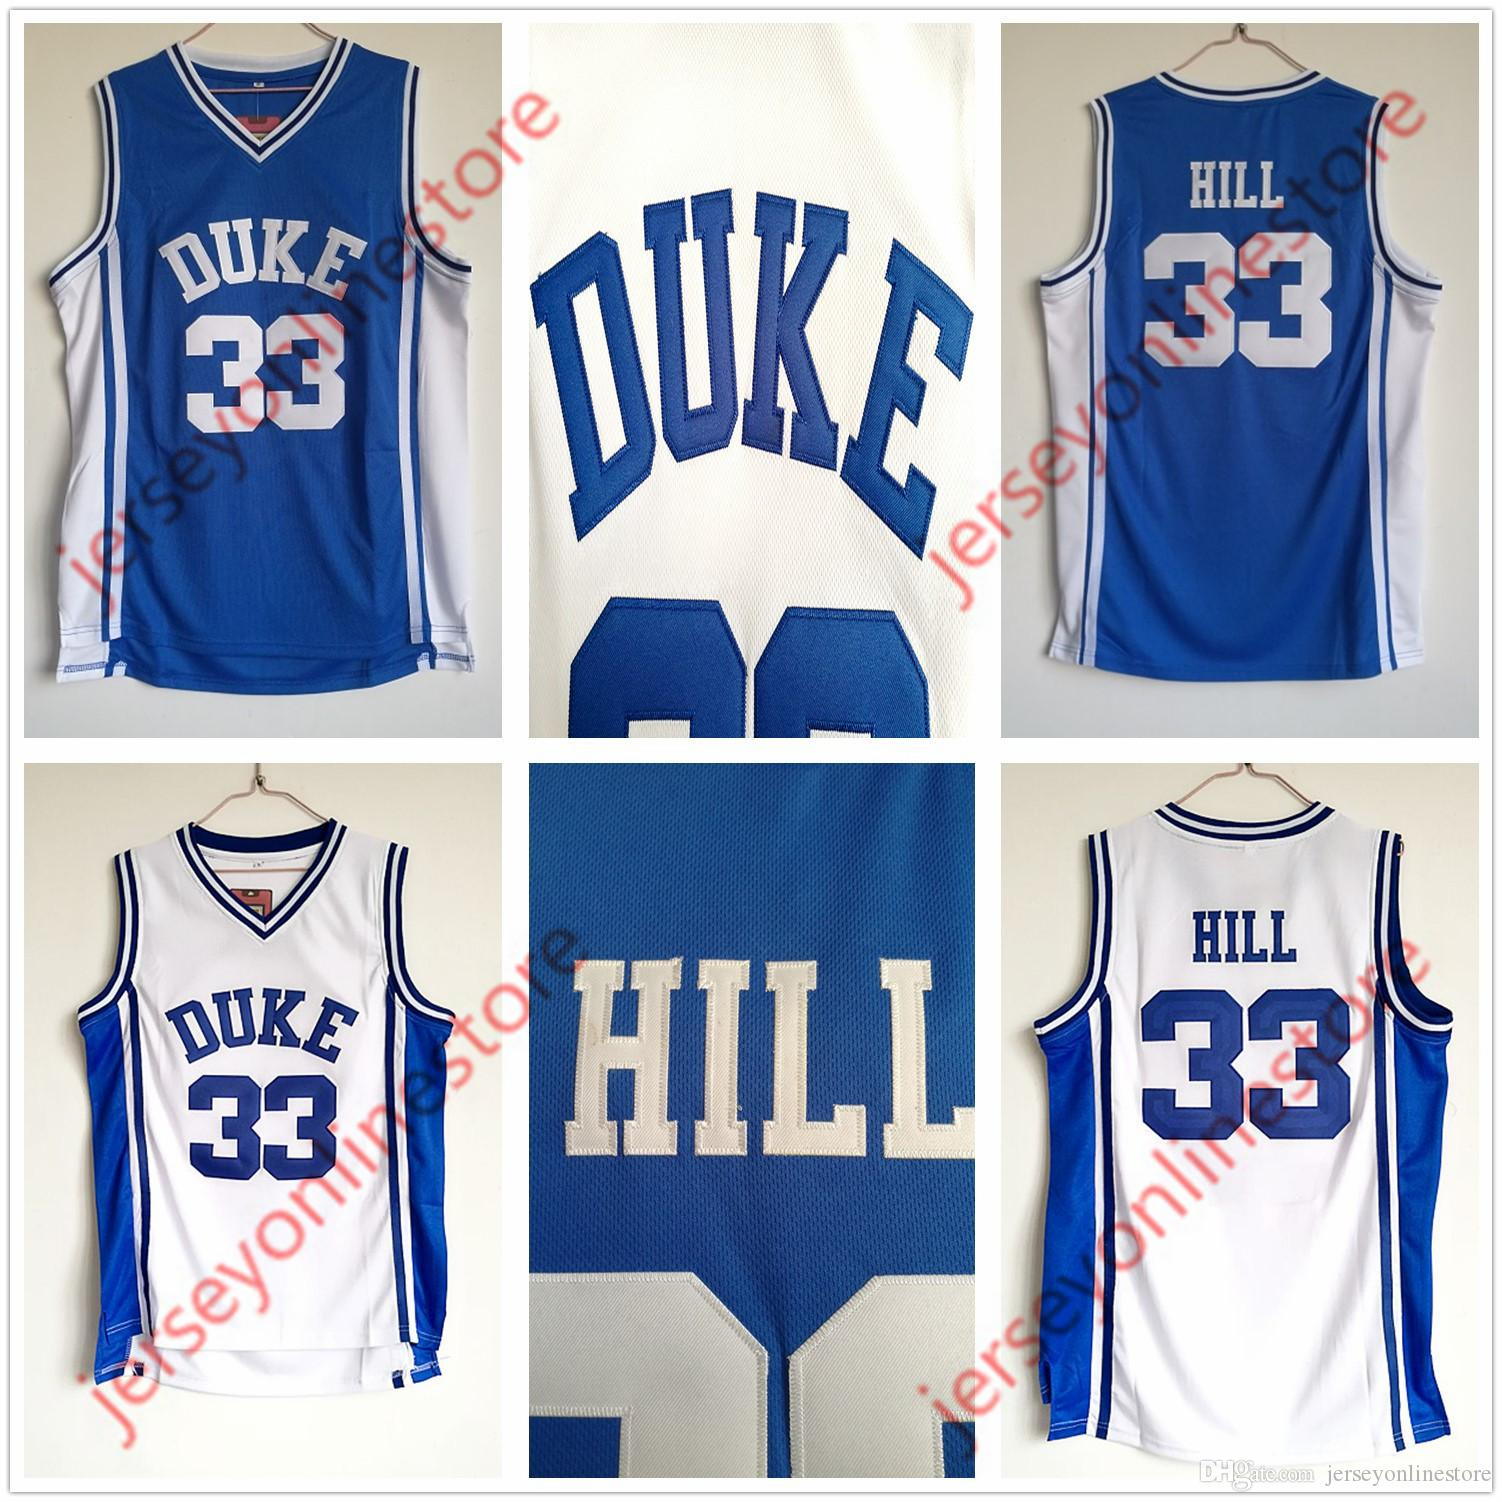 Grant Hill #33 Custom College Basketball Jersey Blue Any